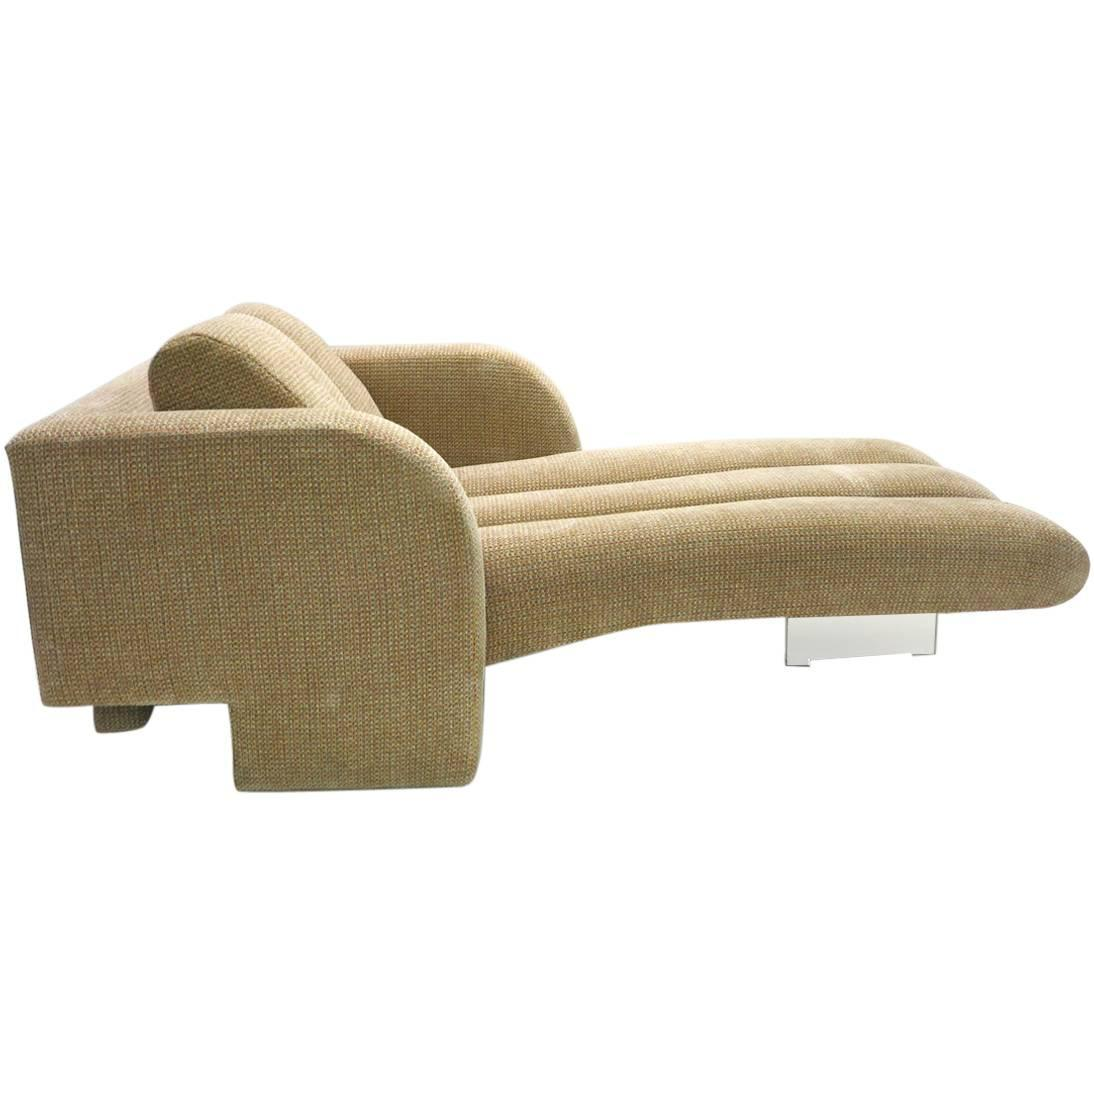 Chaise longue by vladimir kagan great original condition for Chaise longue for sale